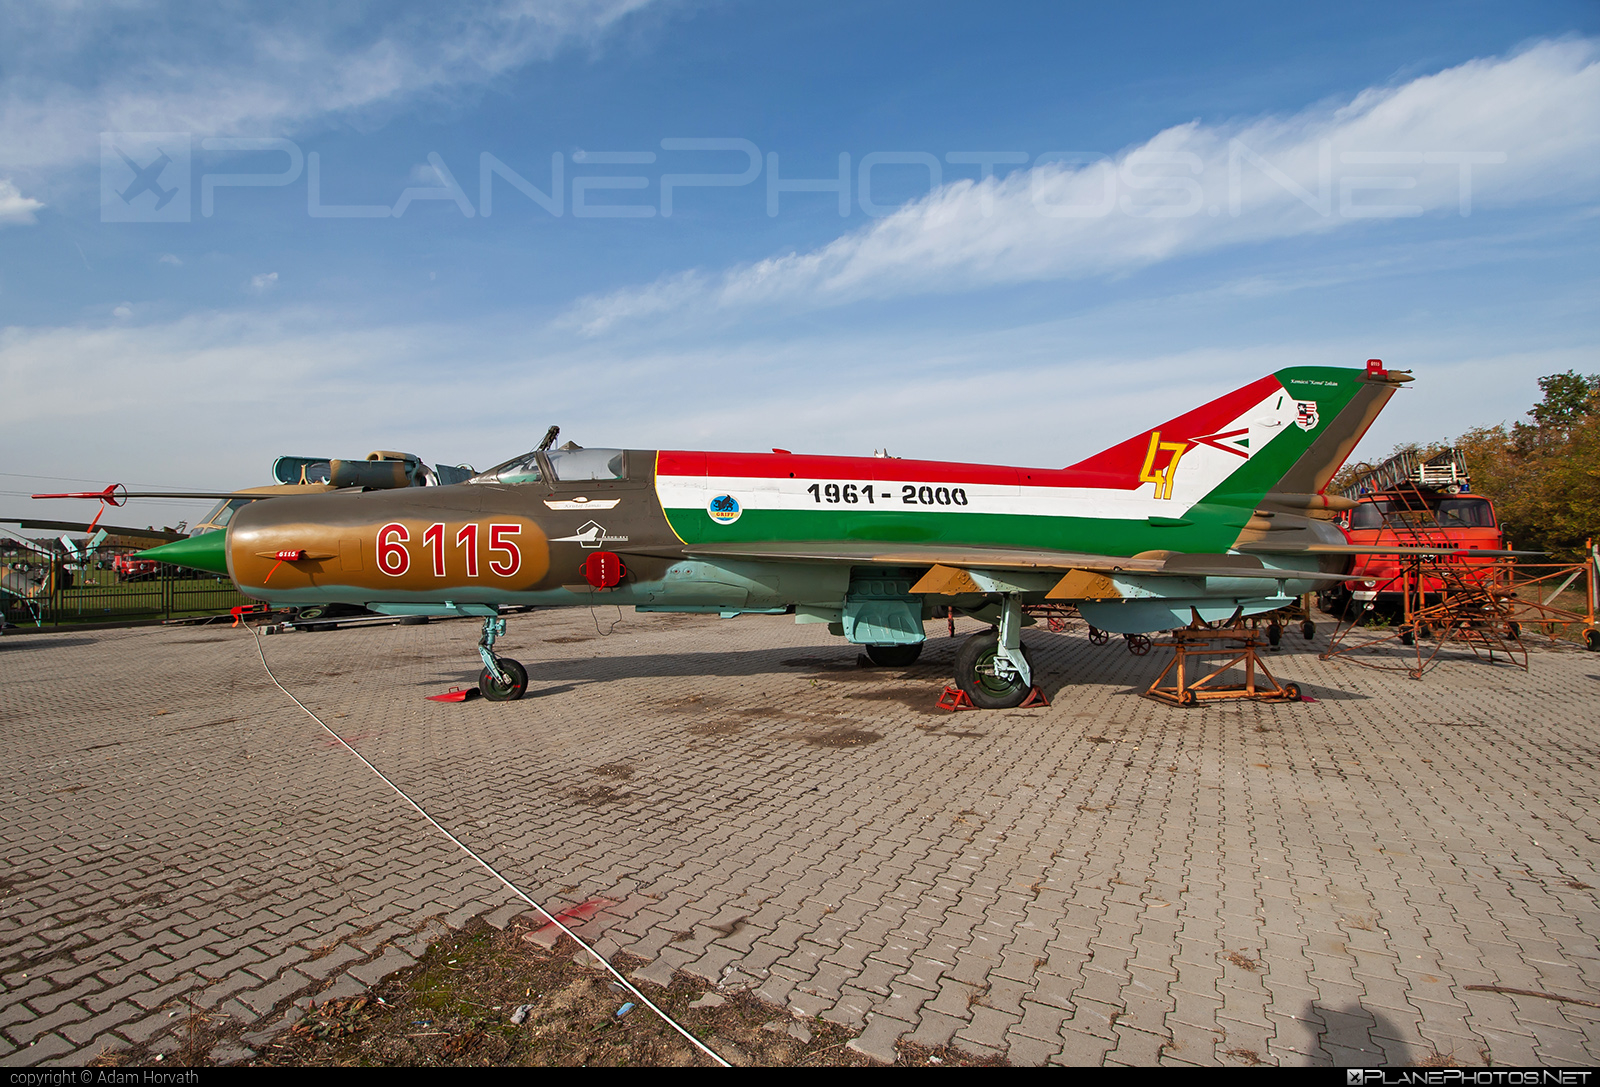 Mikoyan-Gurevich MiG-21bis - 6115 operated by Magyar Légierő (Hungarian Air Force) #hungarianairforce #magyarlegiero #mig #mig21 #mig21bis #mikoyangurevich